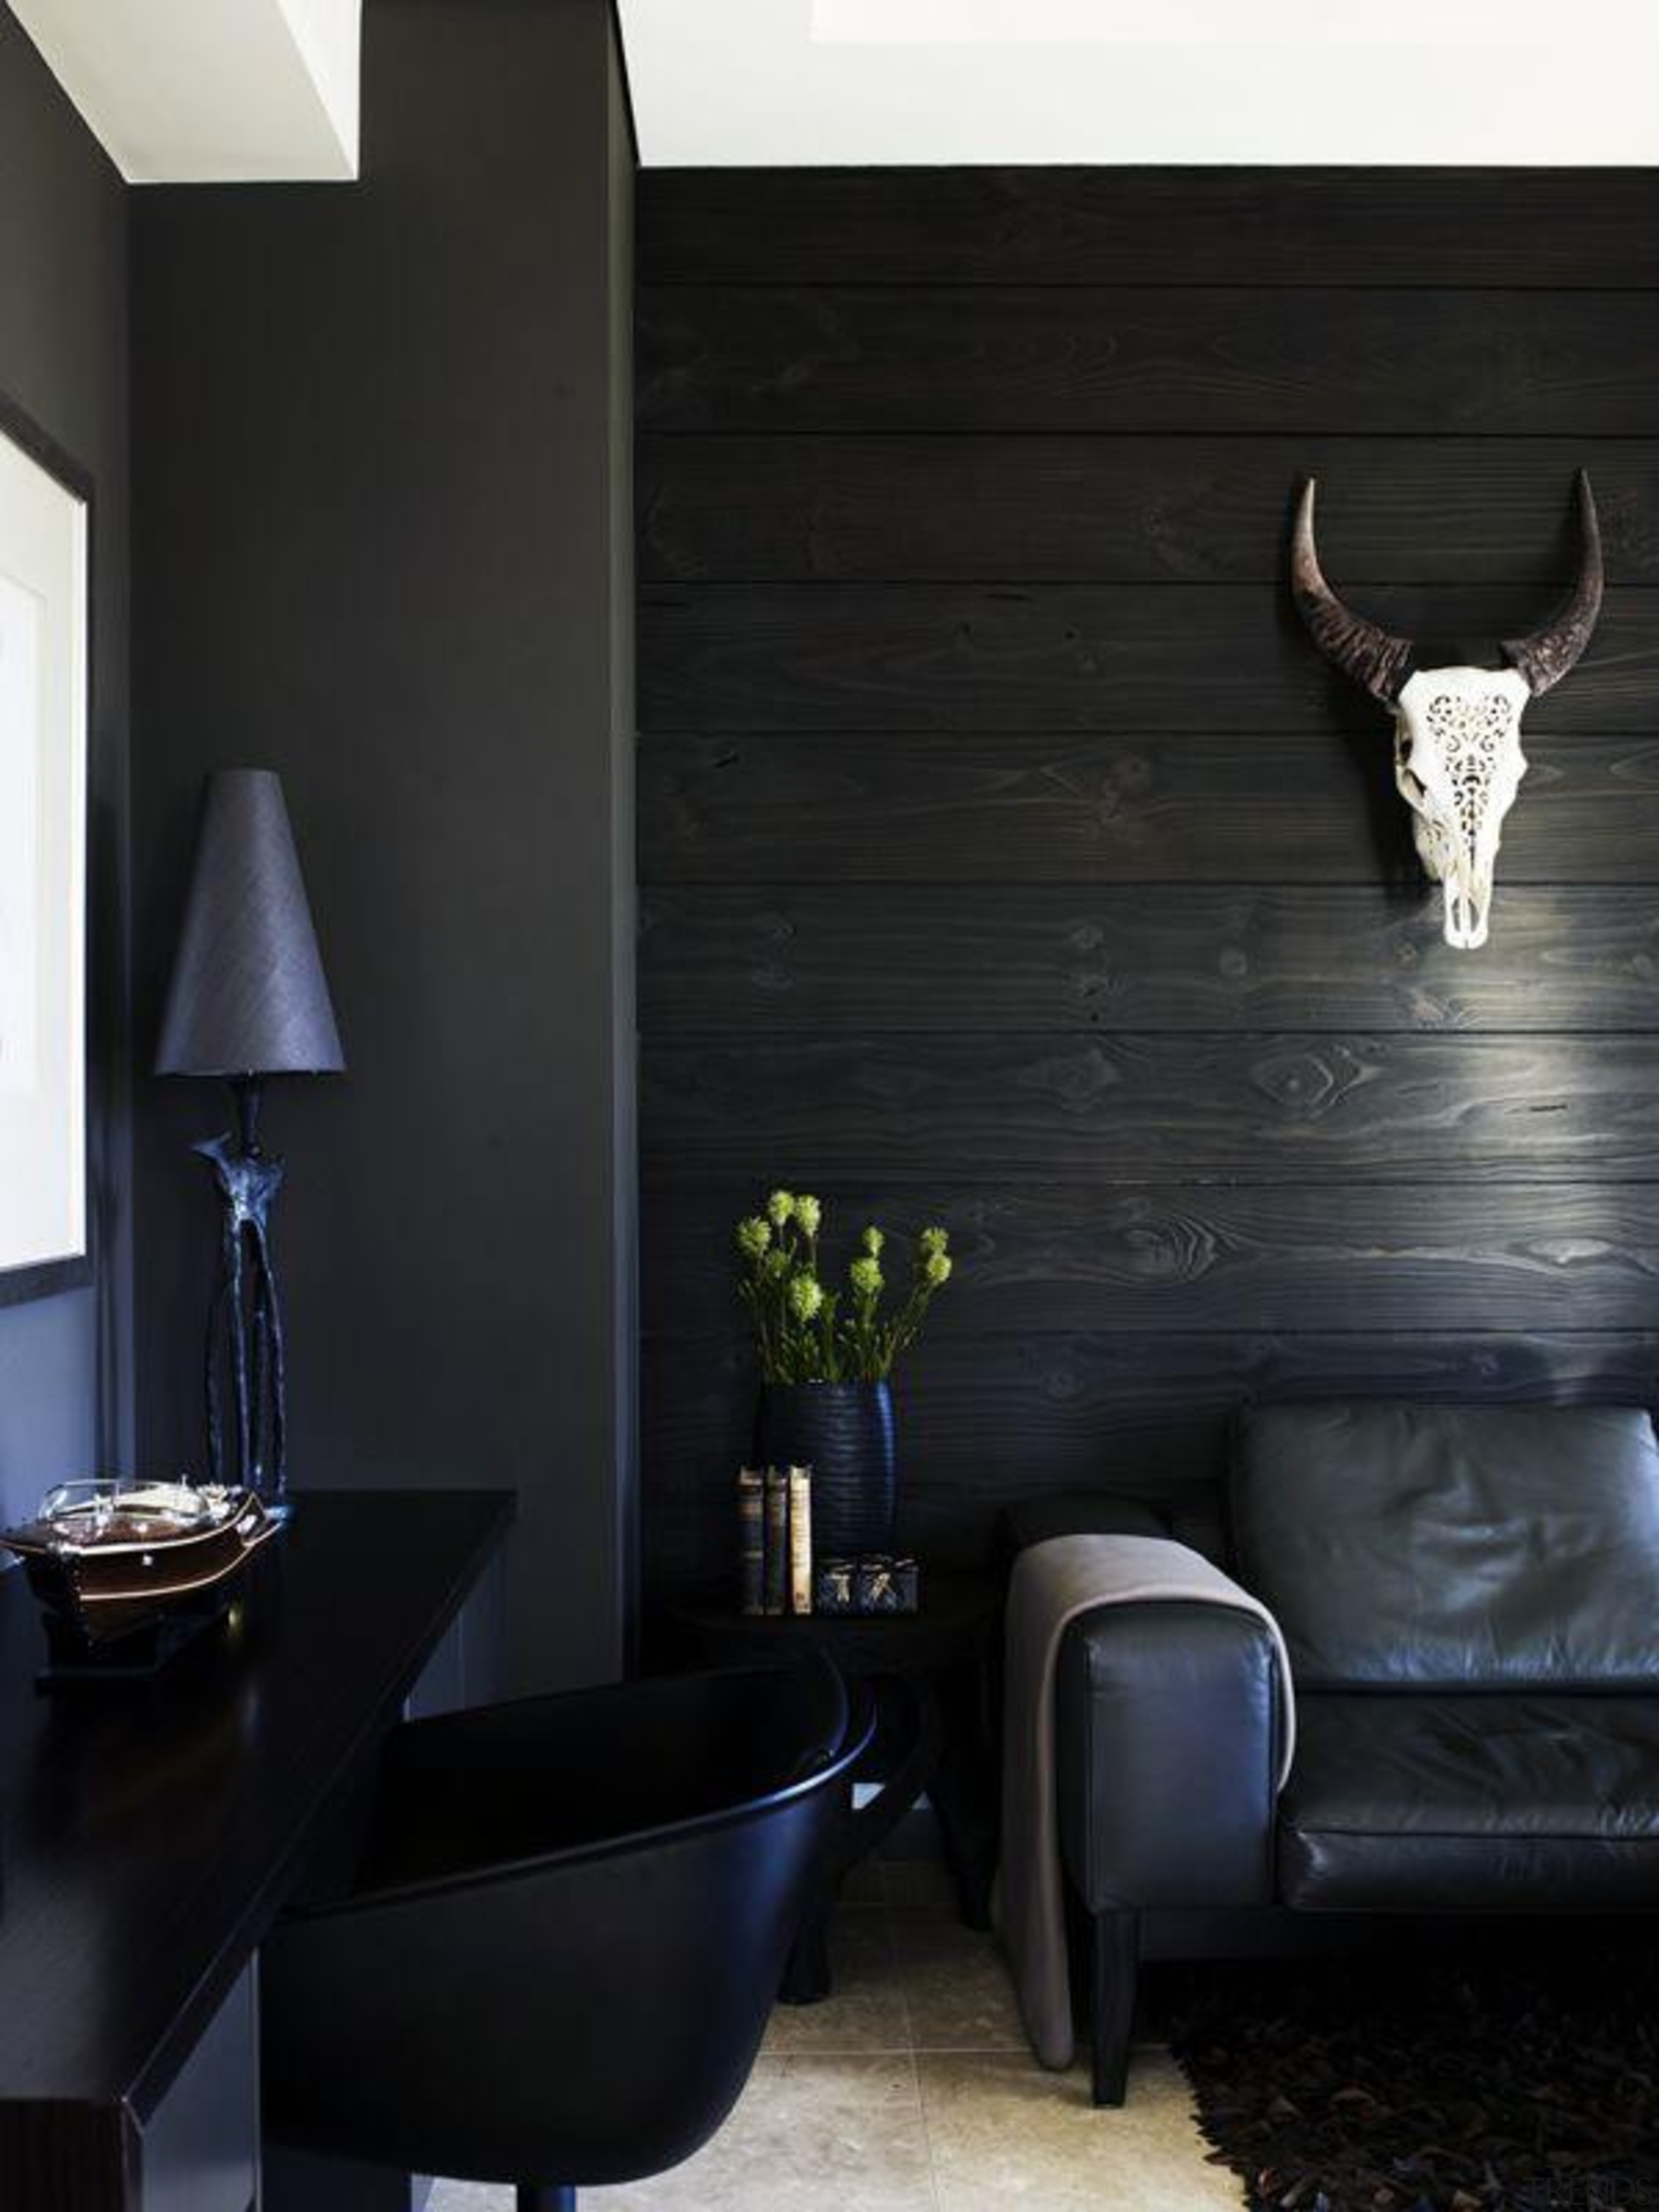 dane van bree + john pegrum / apartment, architecture, floor, furniture, home, house, interior design, light fixture, lighting, living room, room, table, wall, black